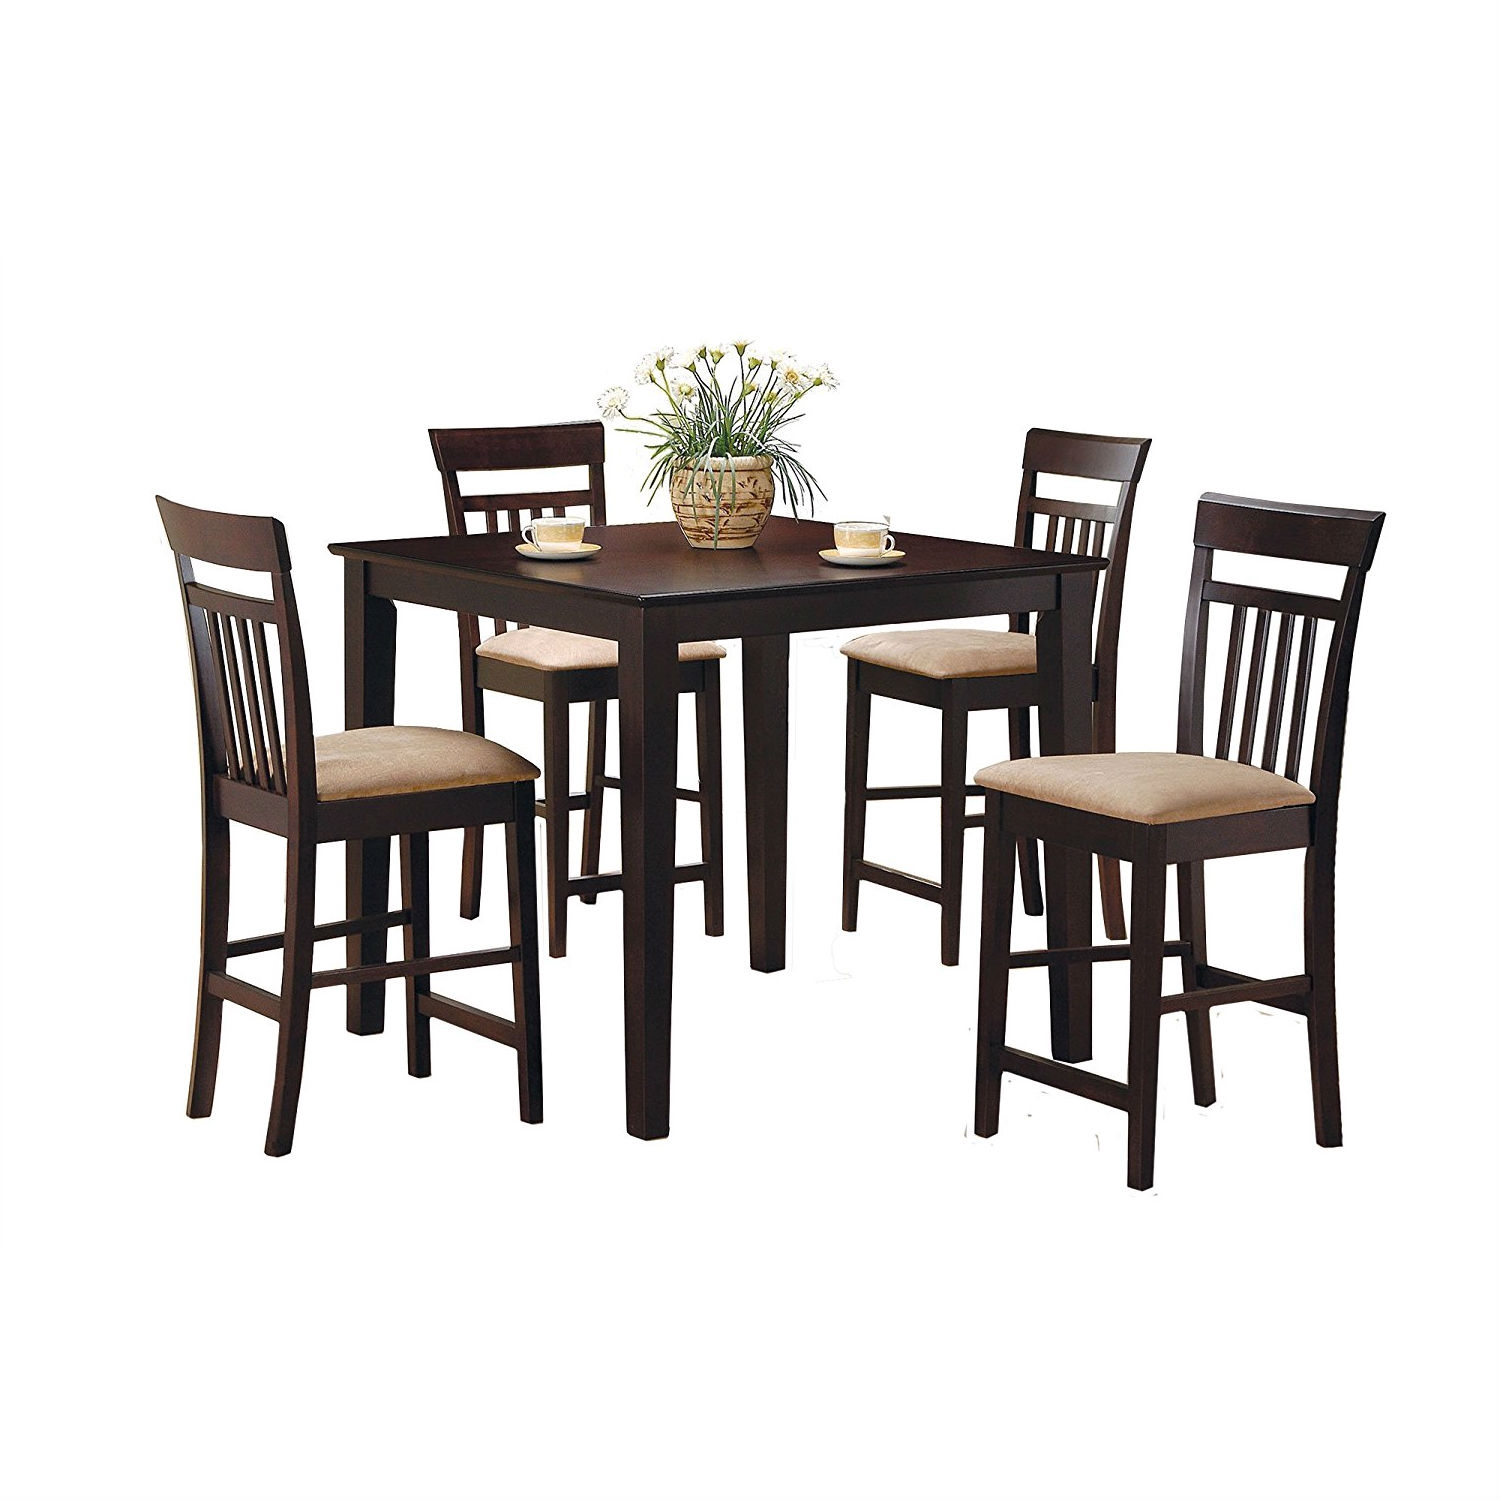 Remarkable Dark Brown 5 Piece Dining Room Set With 4 Counter Height Barstools Download Free Architecture Designs Sospemadebymaigaardcom